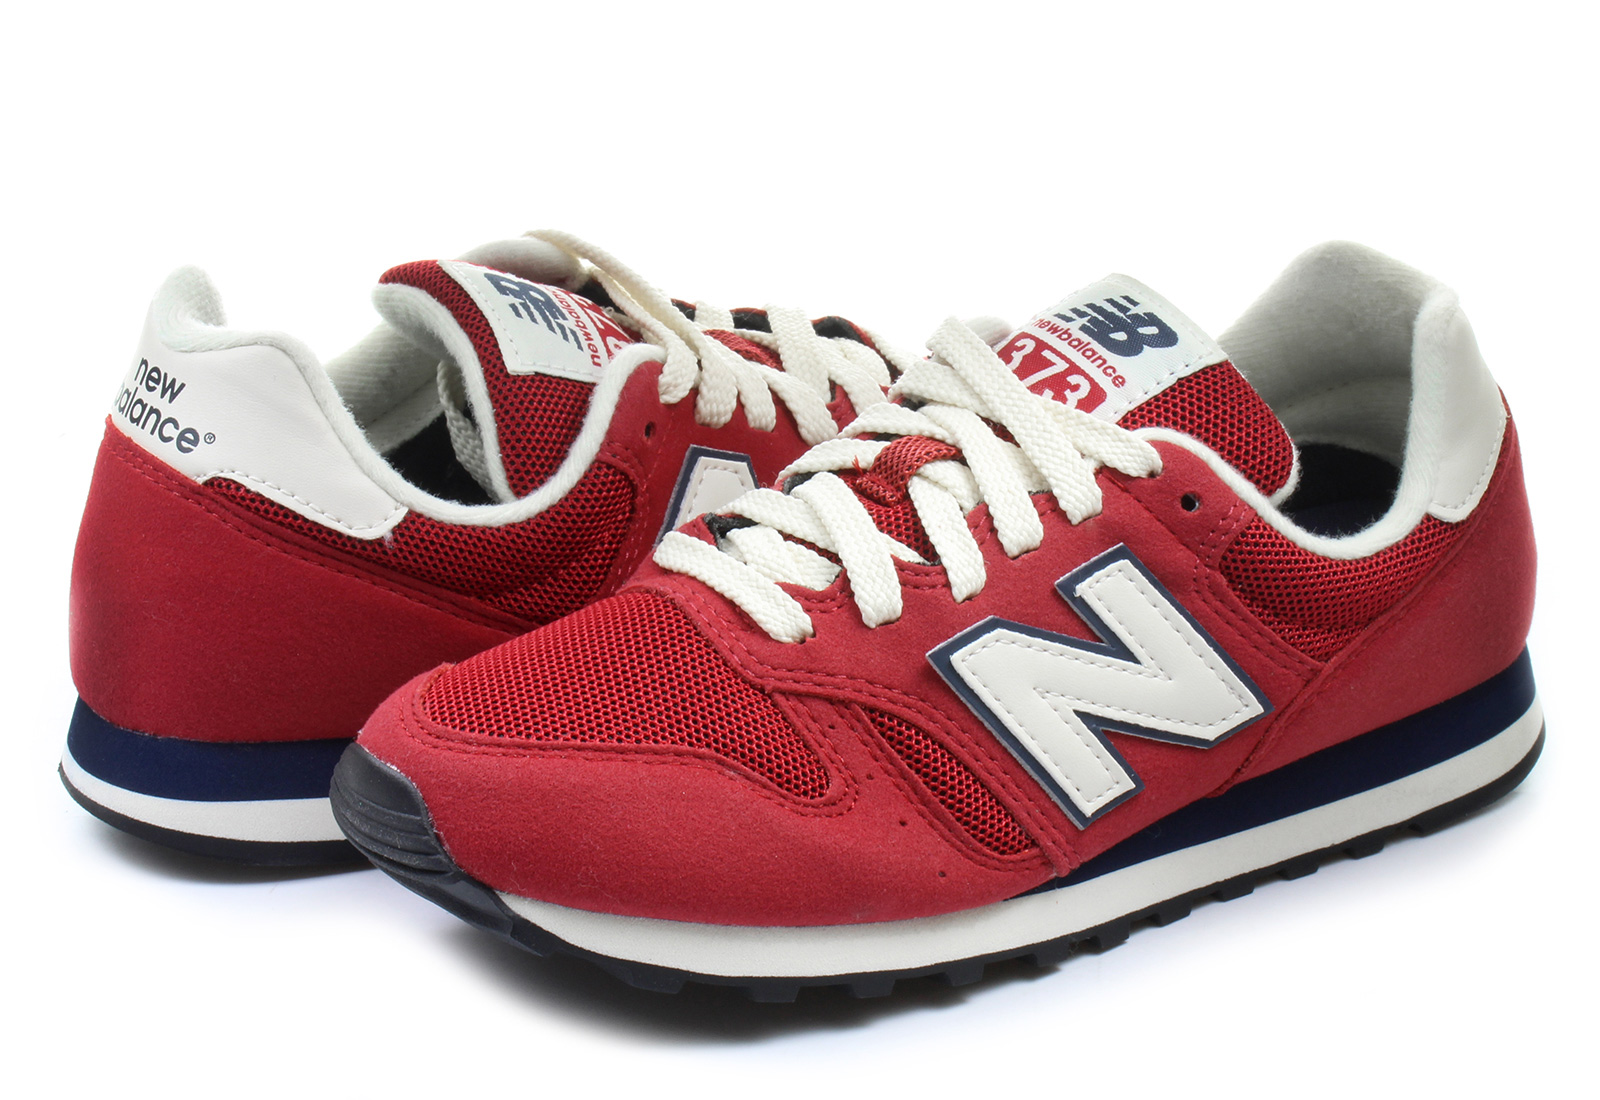 New Balance Shoes Ml373 Ml373r Online Shop For